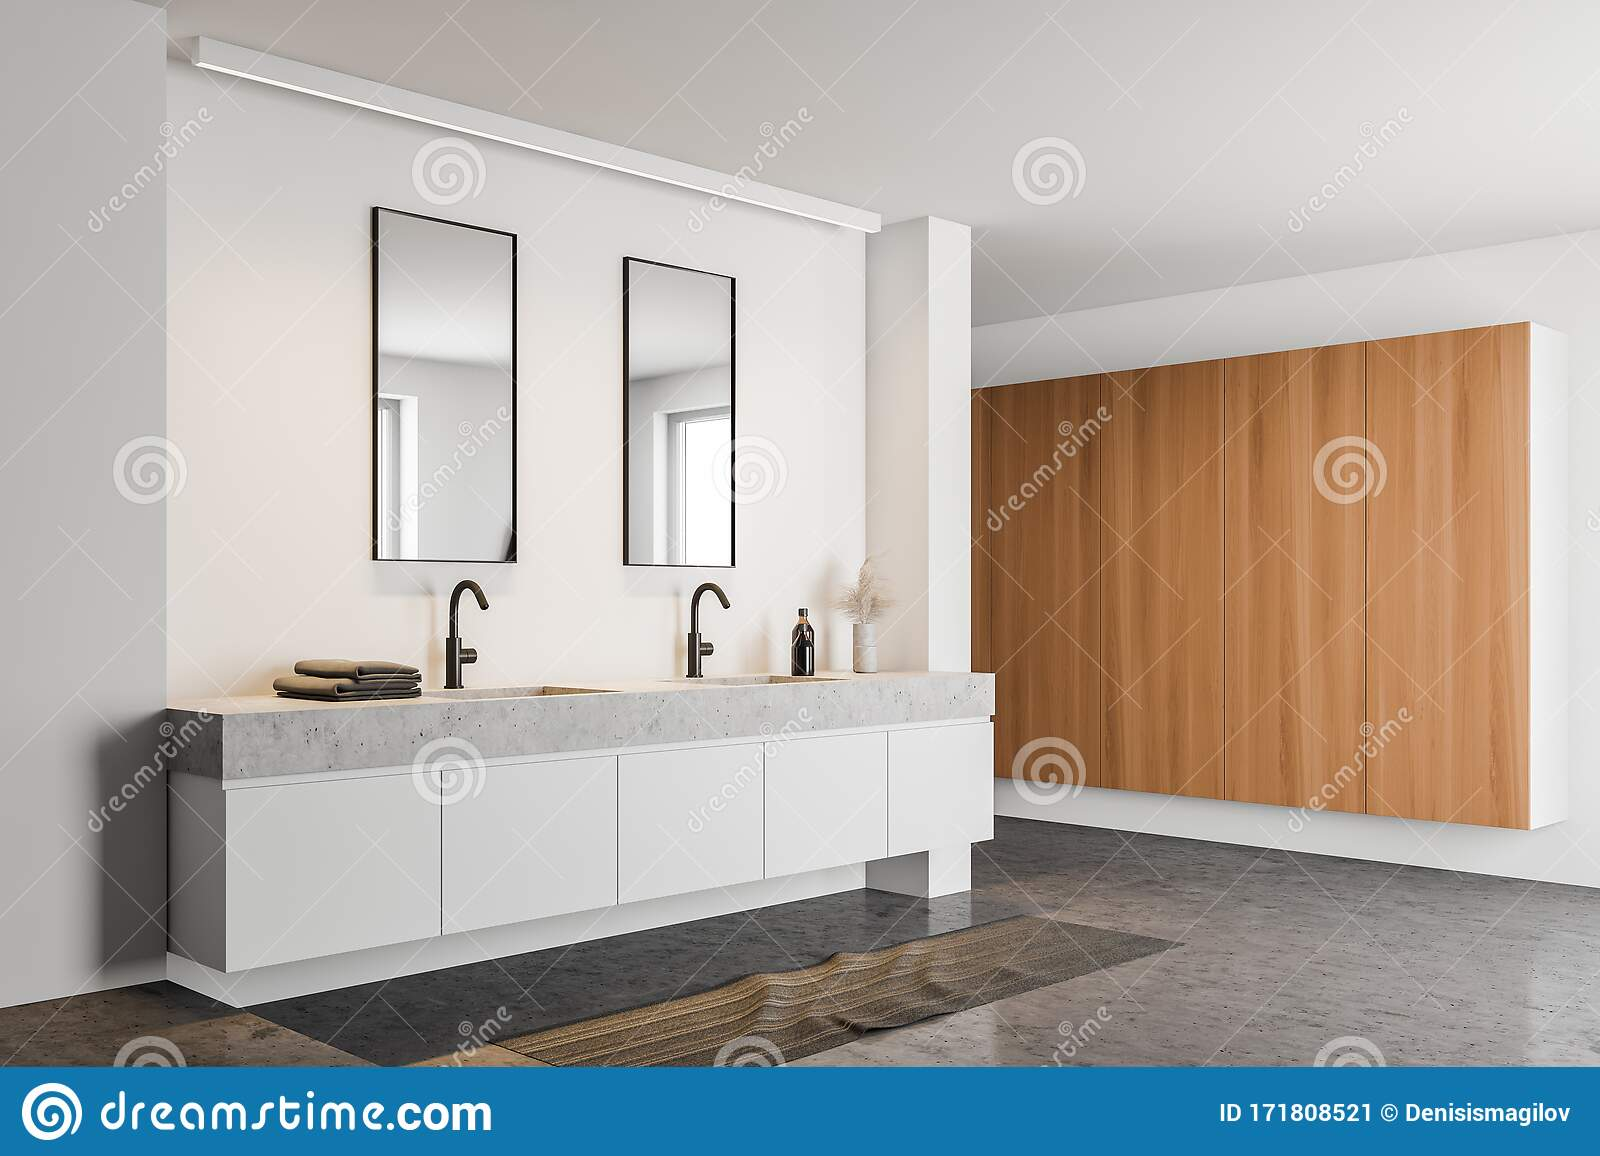 White Bathroom Corner With Double Sink Stock Illustration Illustration Of House Contemporary 171808521